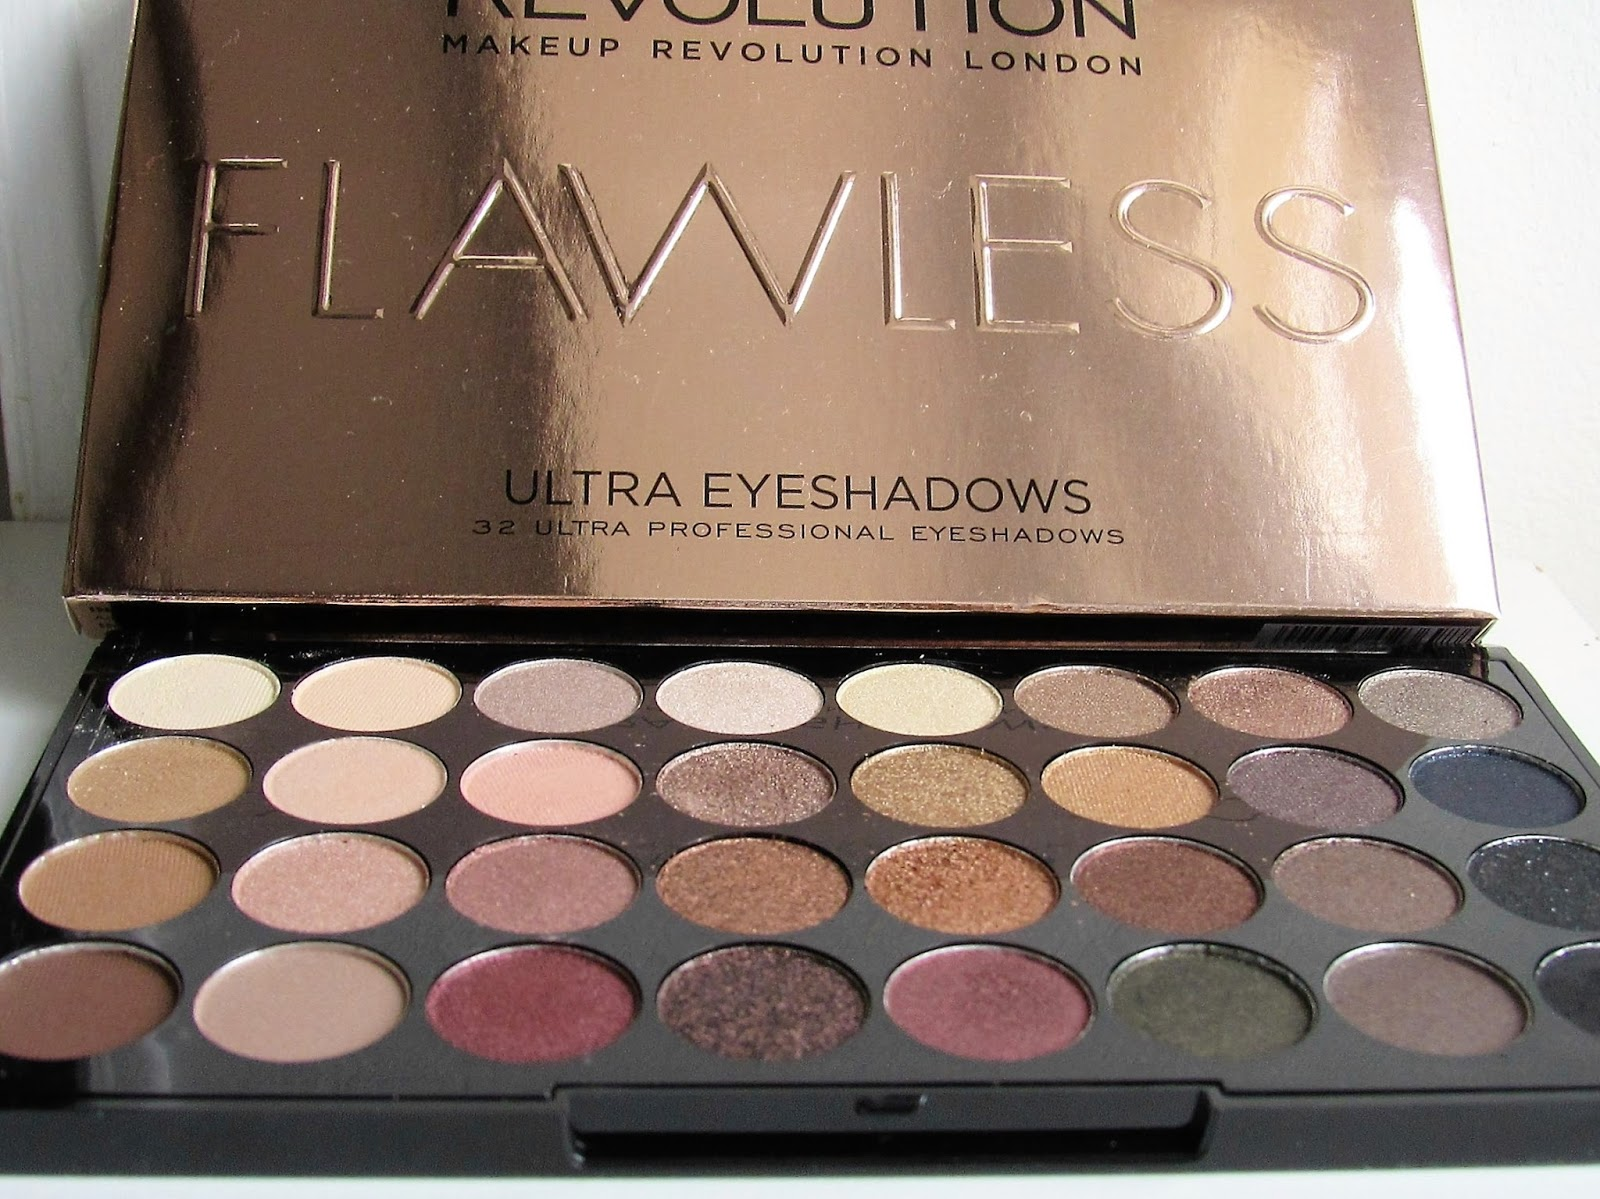 Where is makeup revolution from